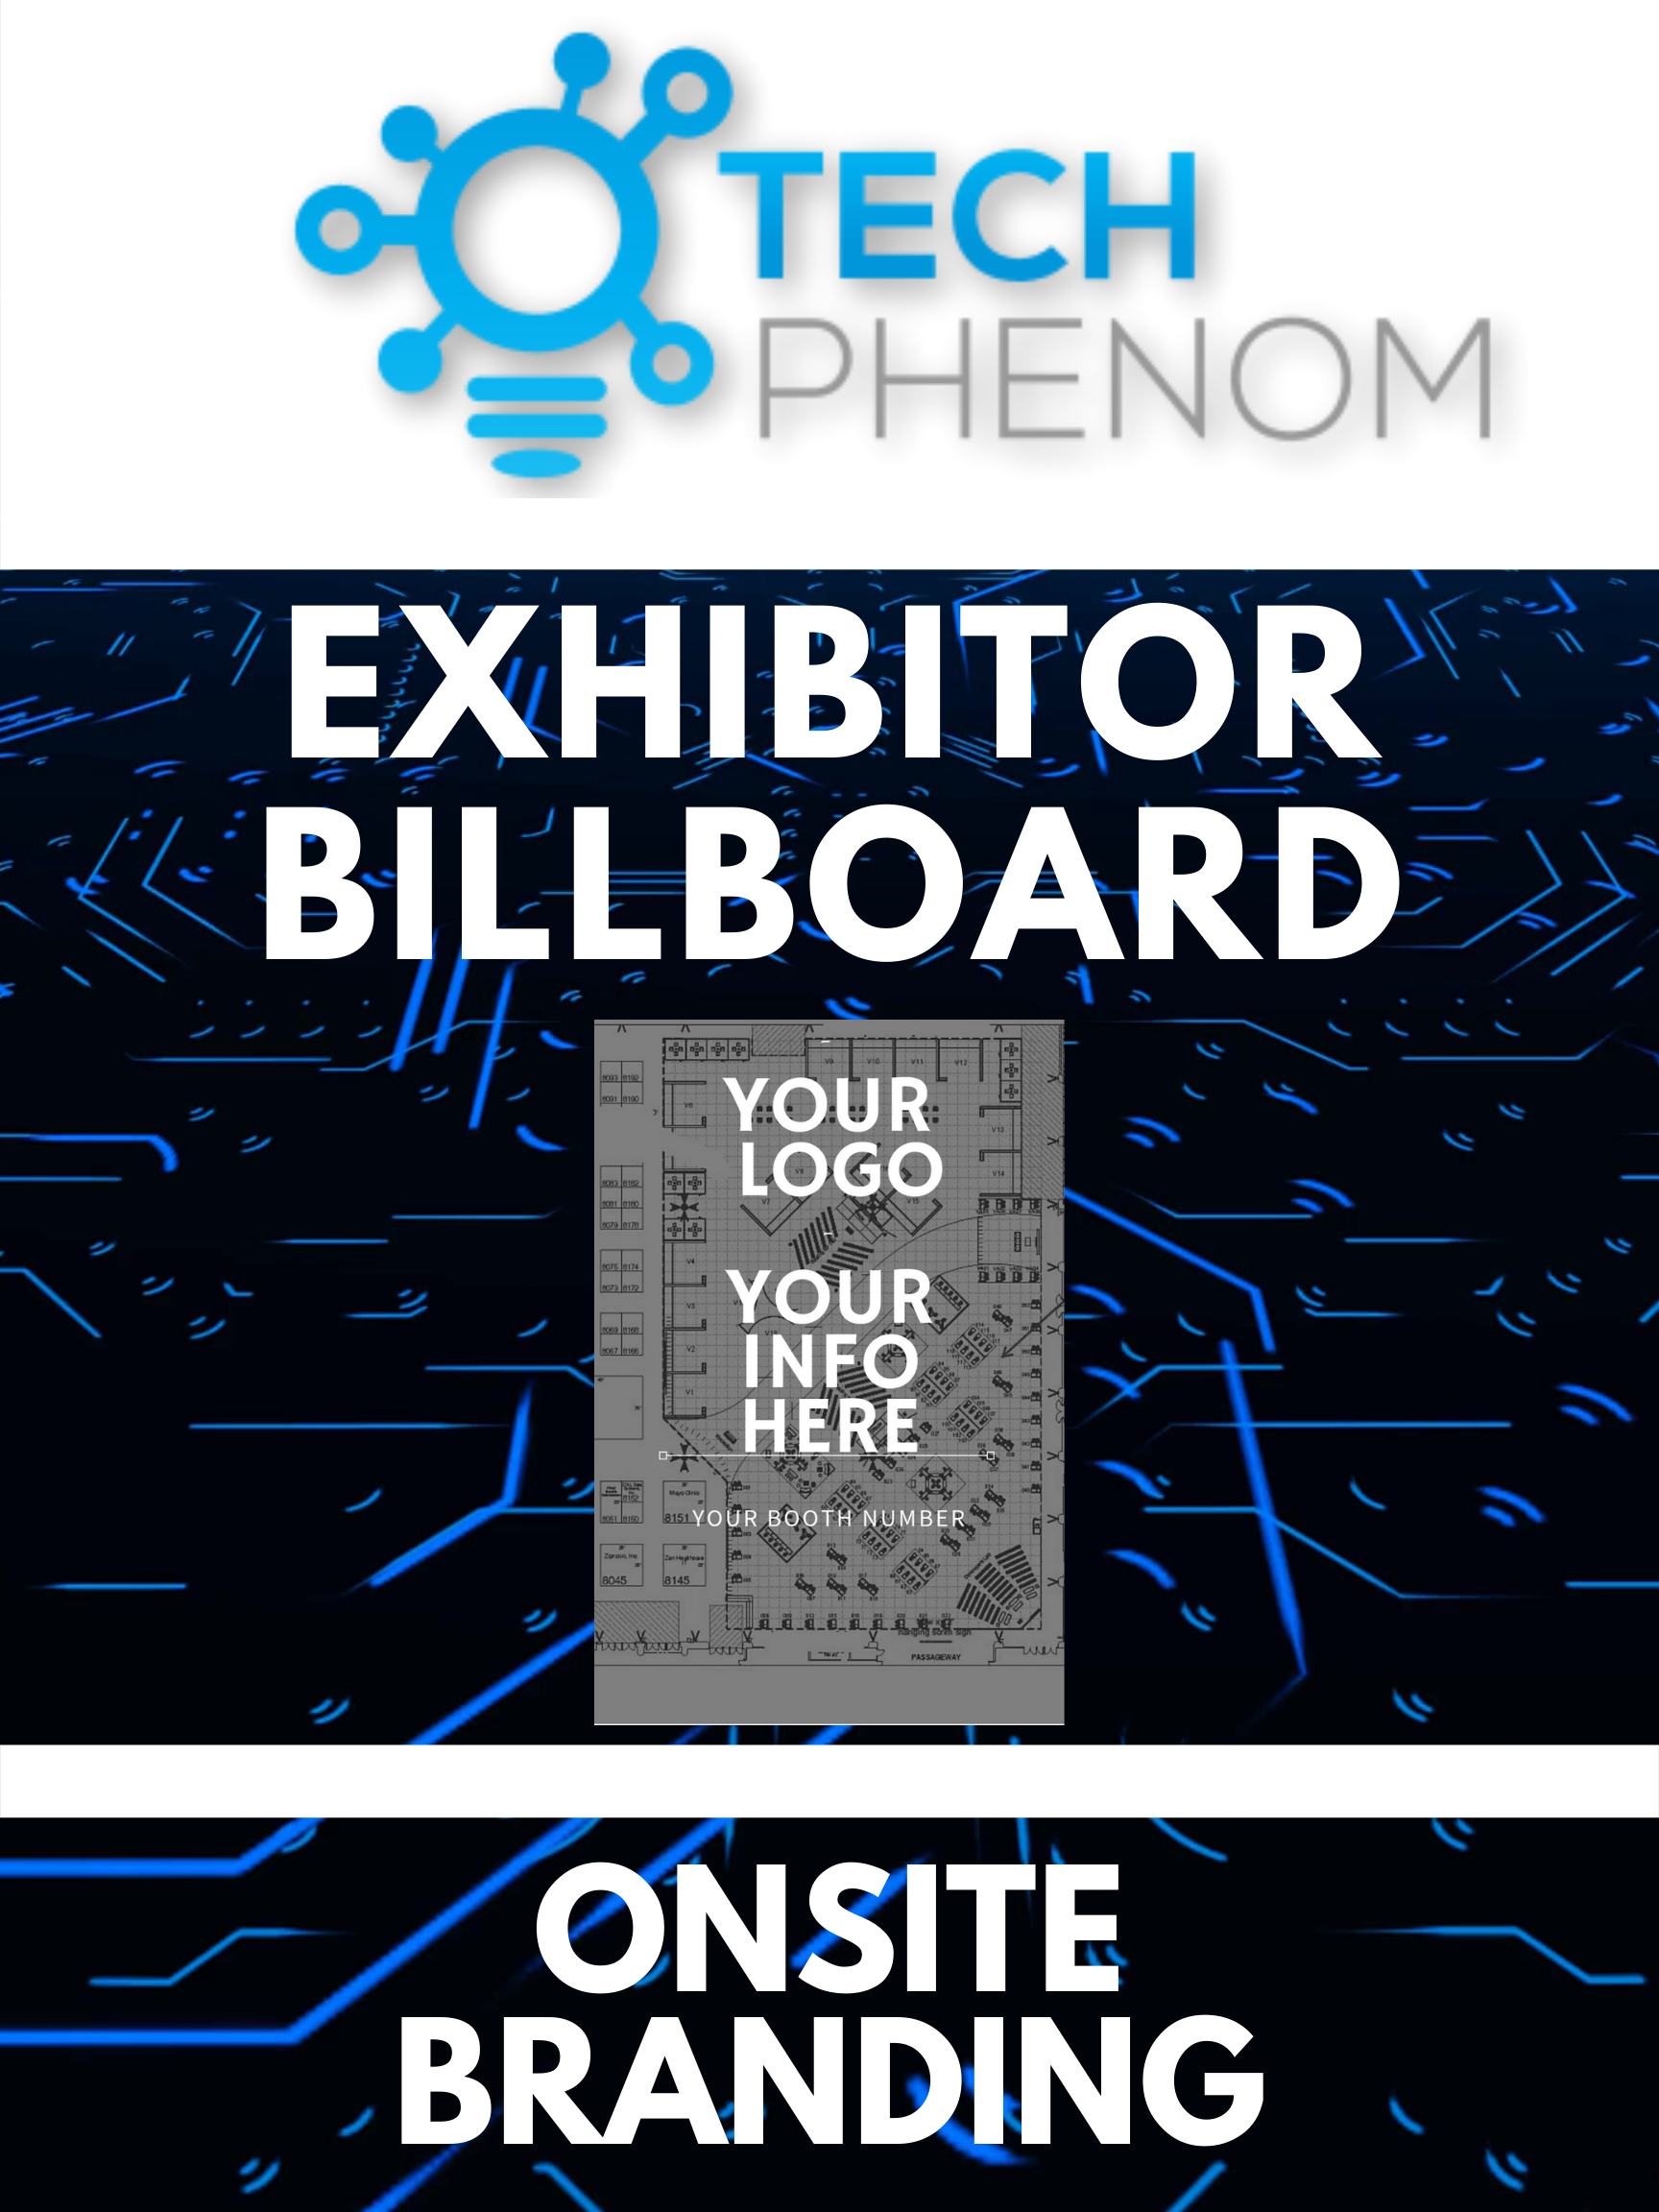 Tech Phenomenon Exhibitor Billboard